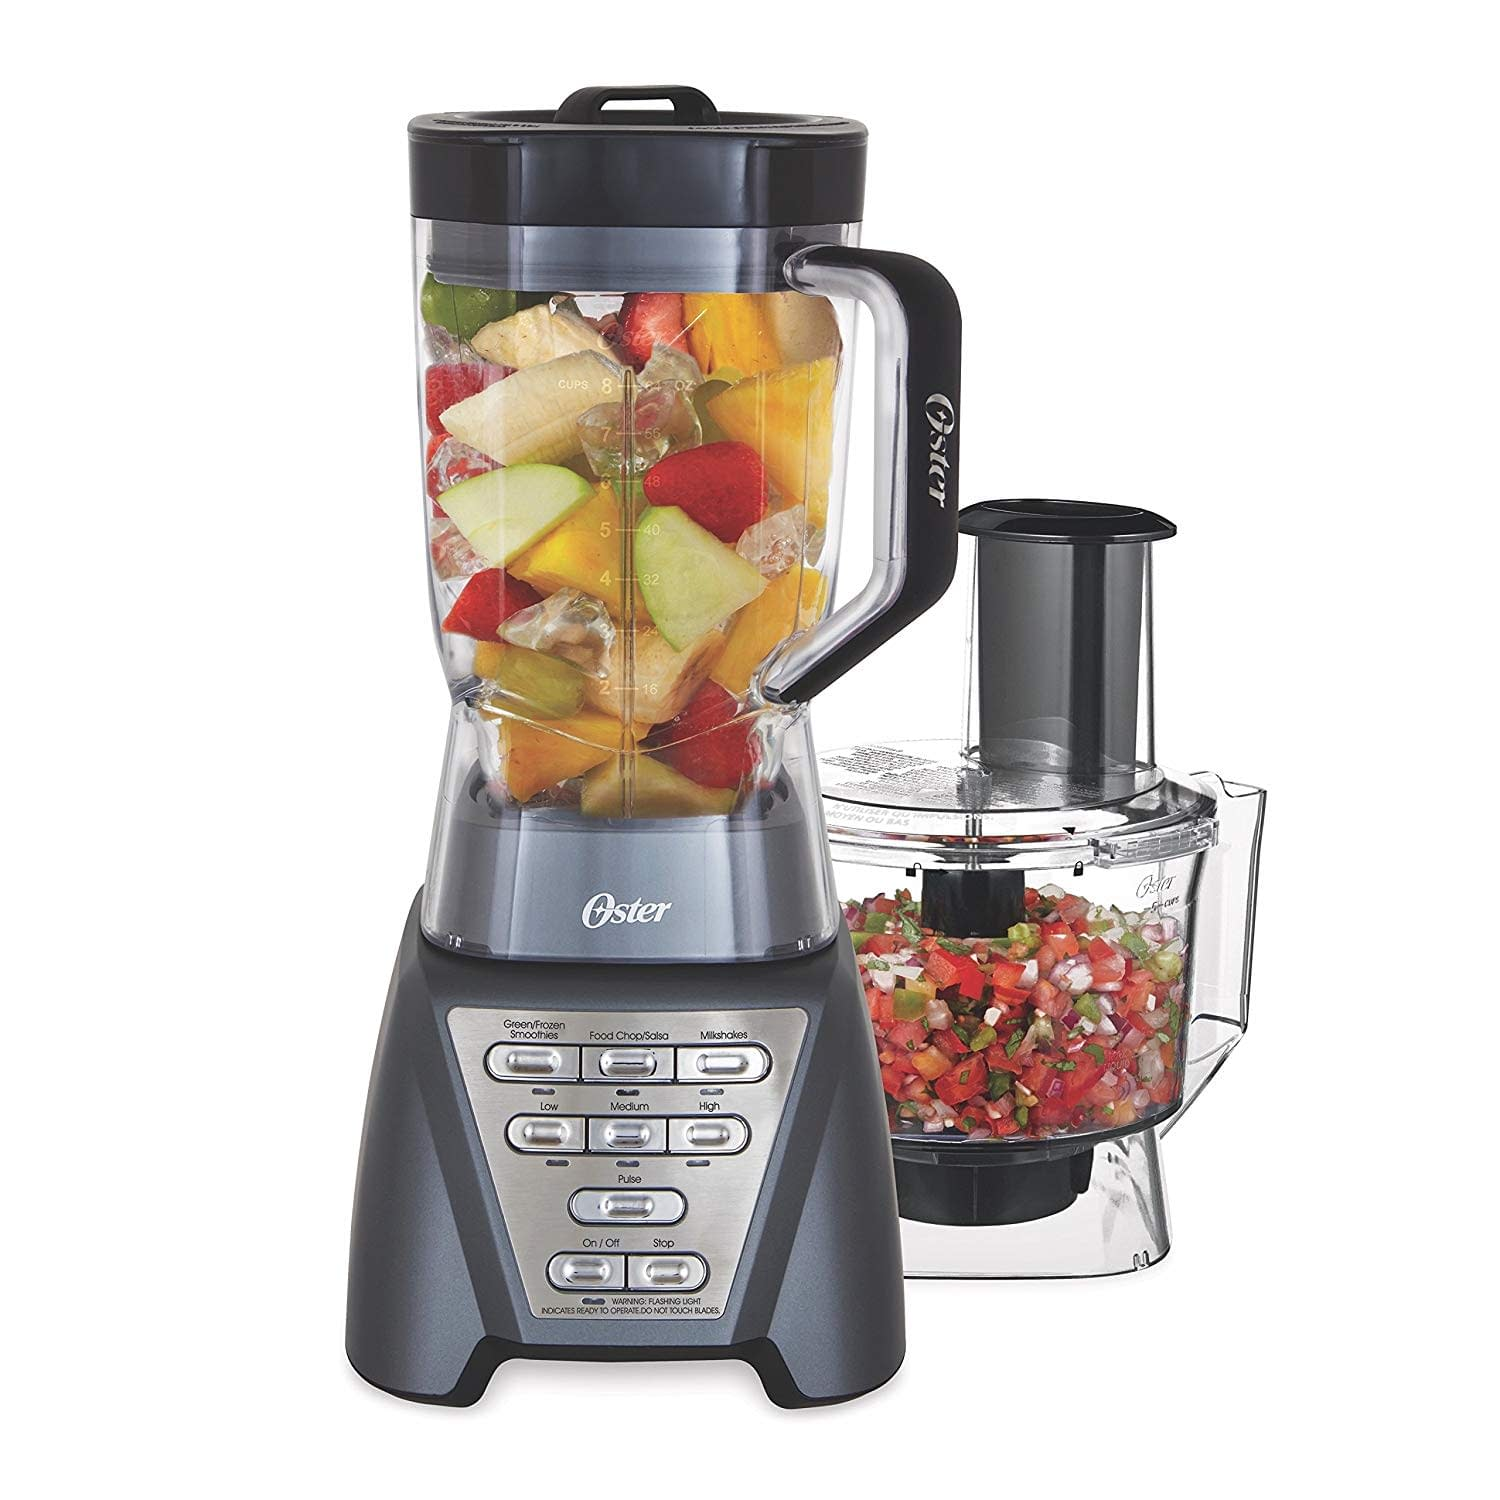 High end blenders for smoothies